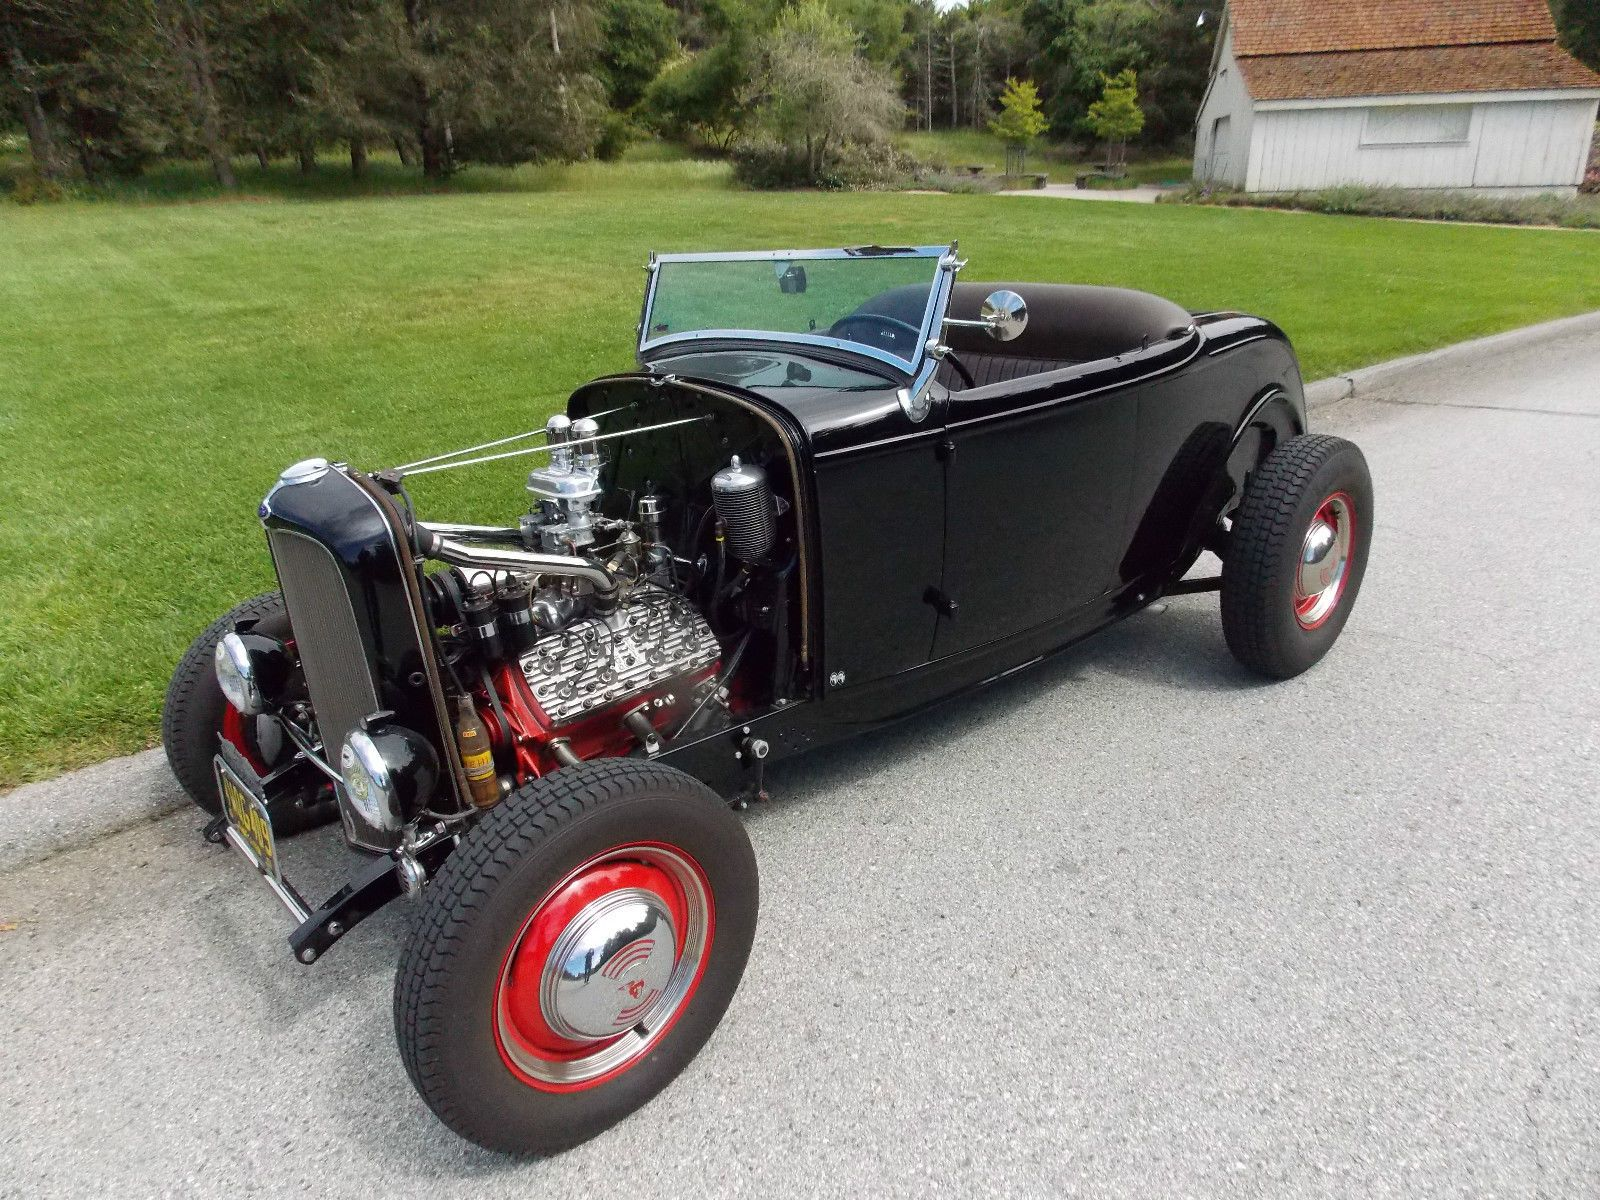 1932 Ford Roadster V8 Hot Rod 1940\'s Style | Hot rods for sale ...